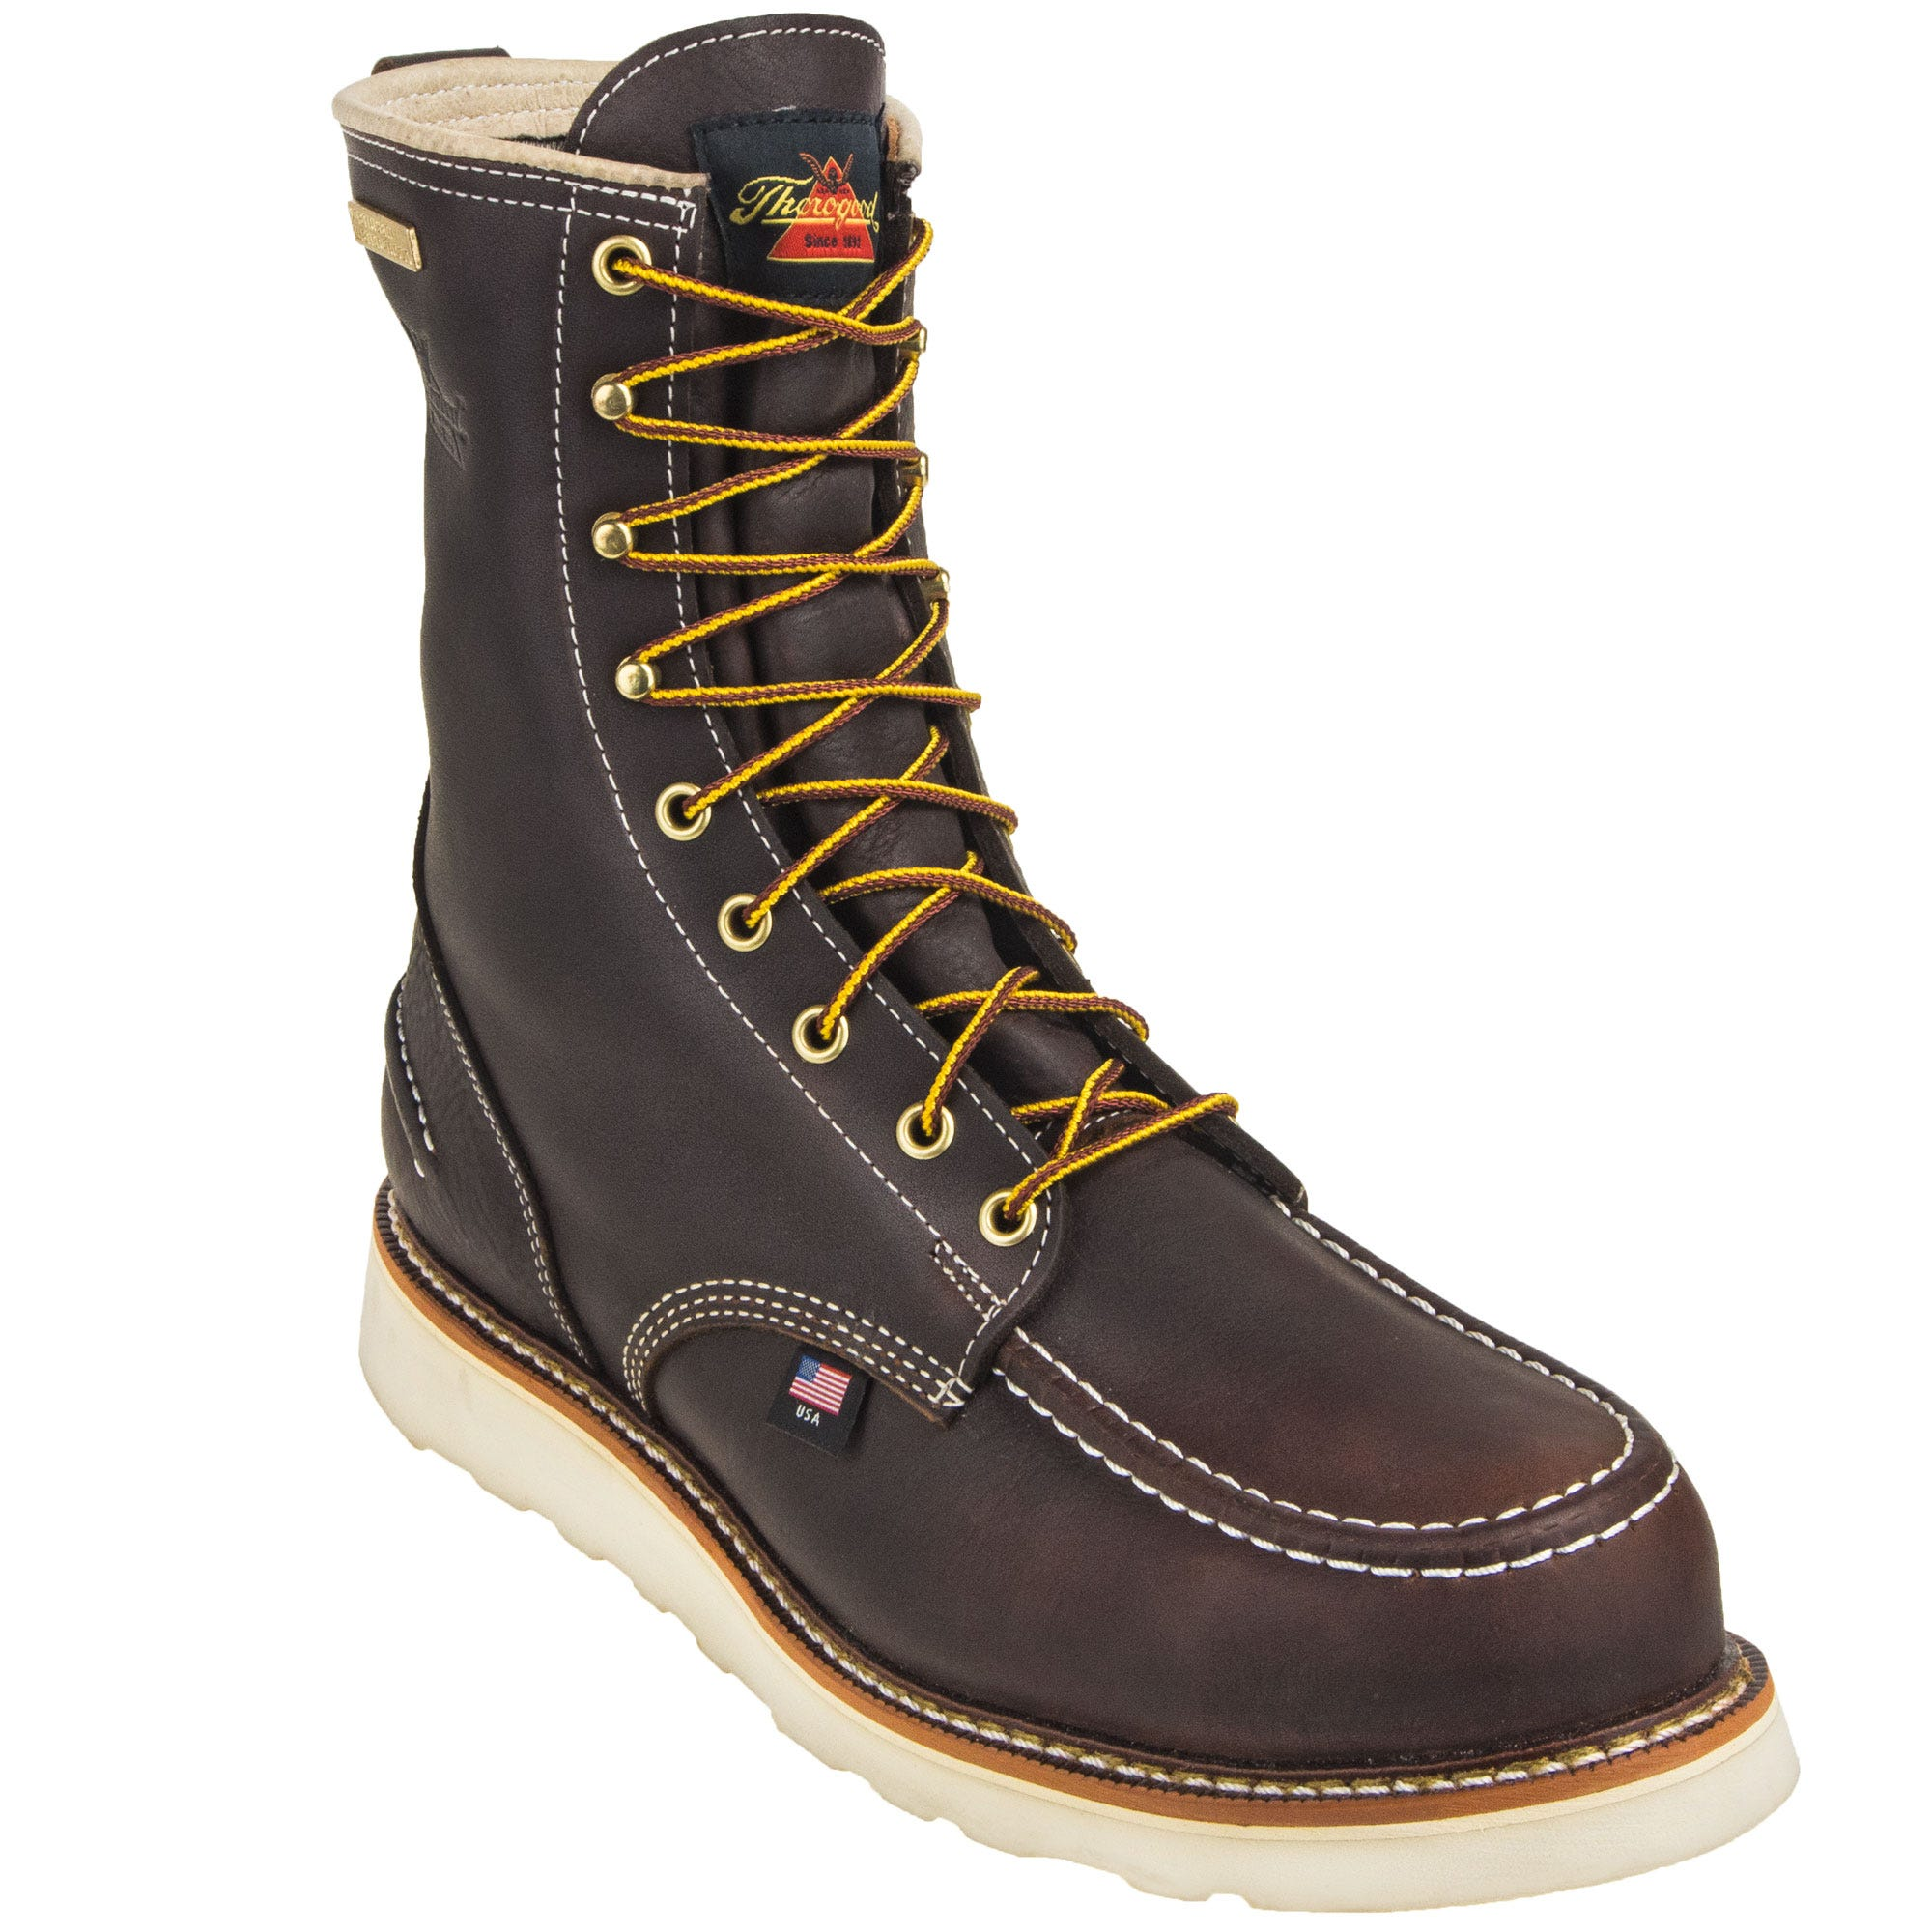 75d0eff8137 Thorogood Men's Boots | MenStyle USA